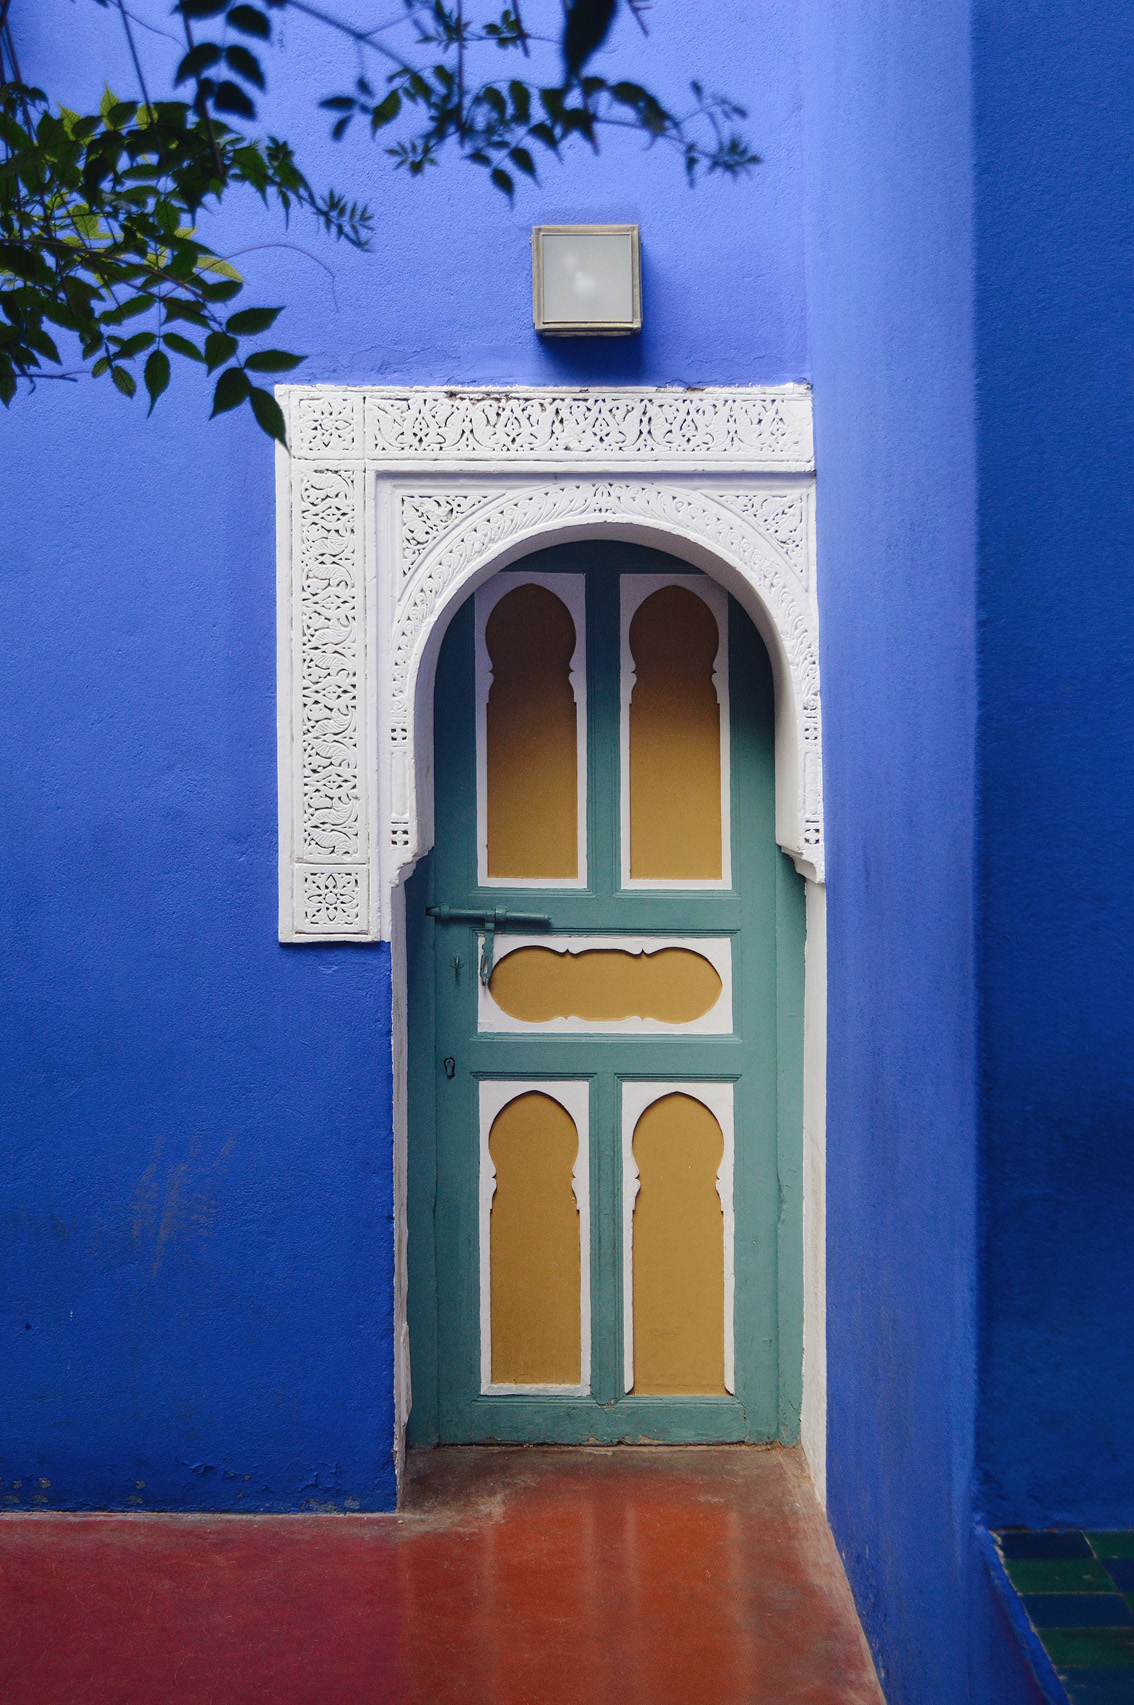 2 Jardin Majorelle - a magical place in Marrakech.